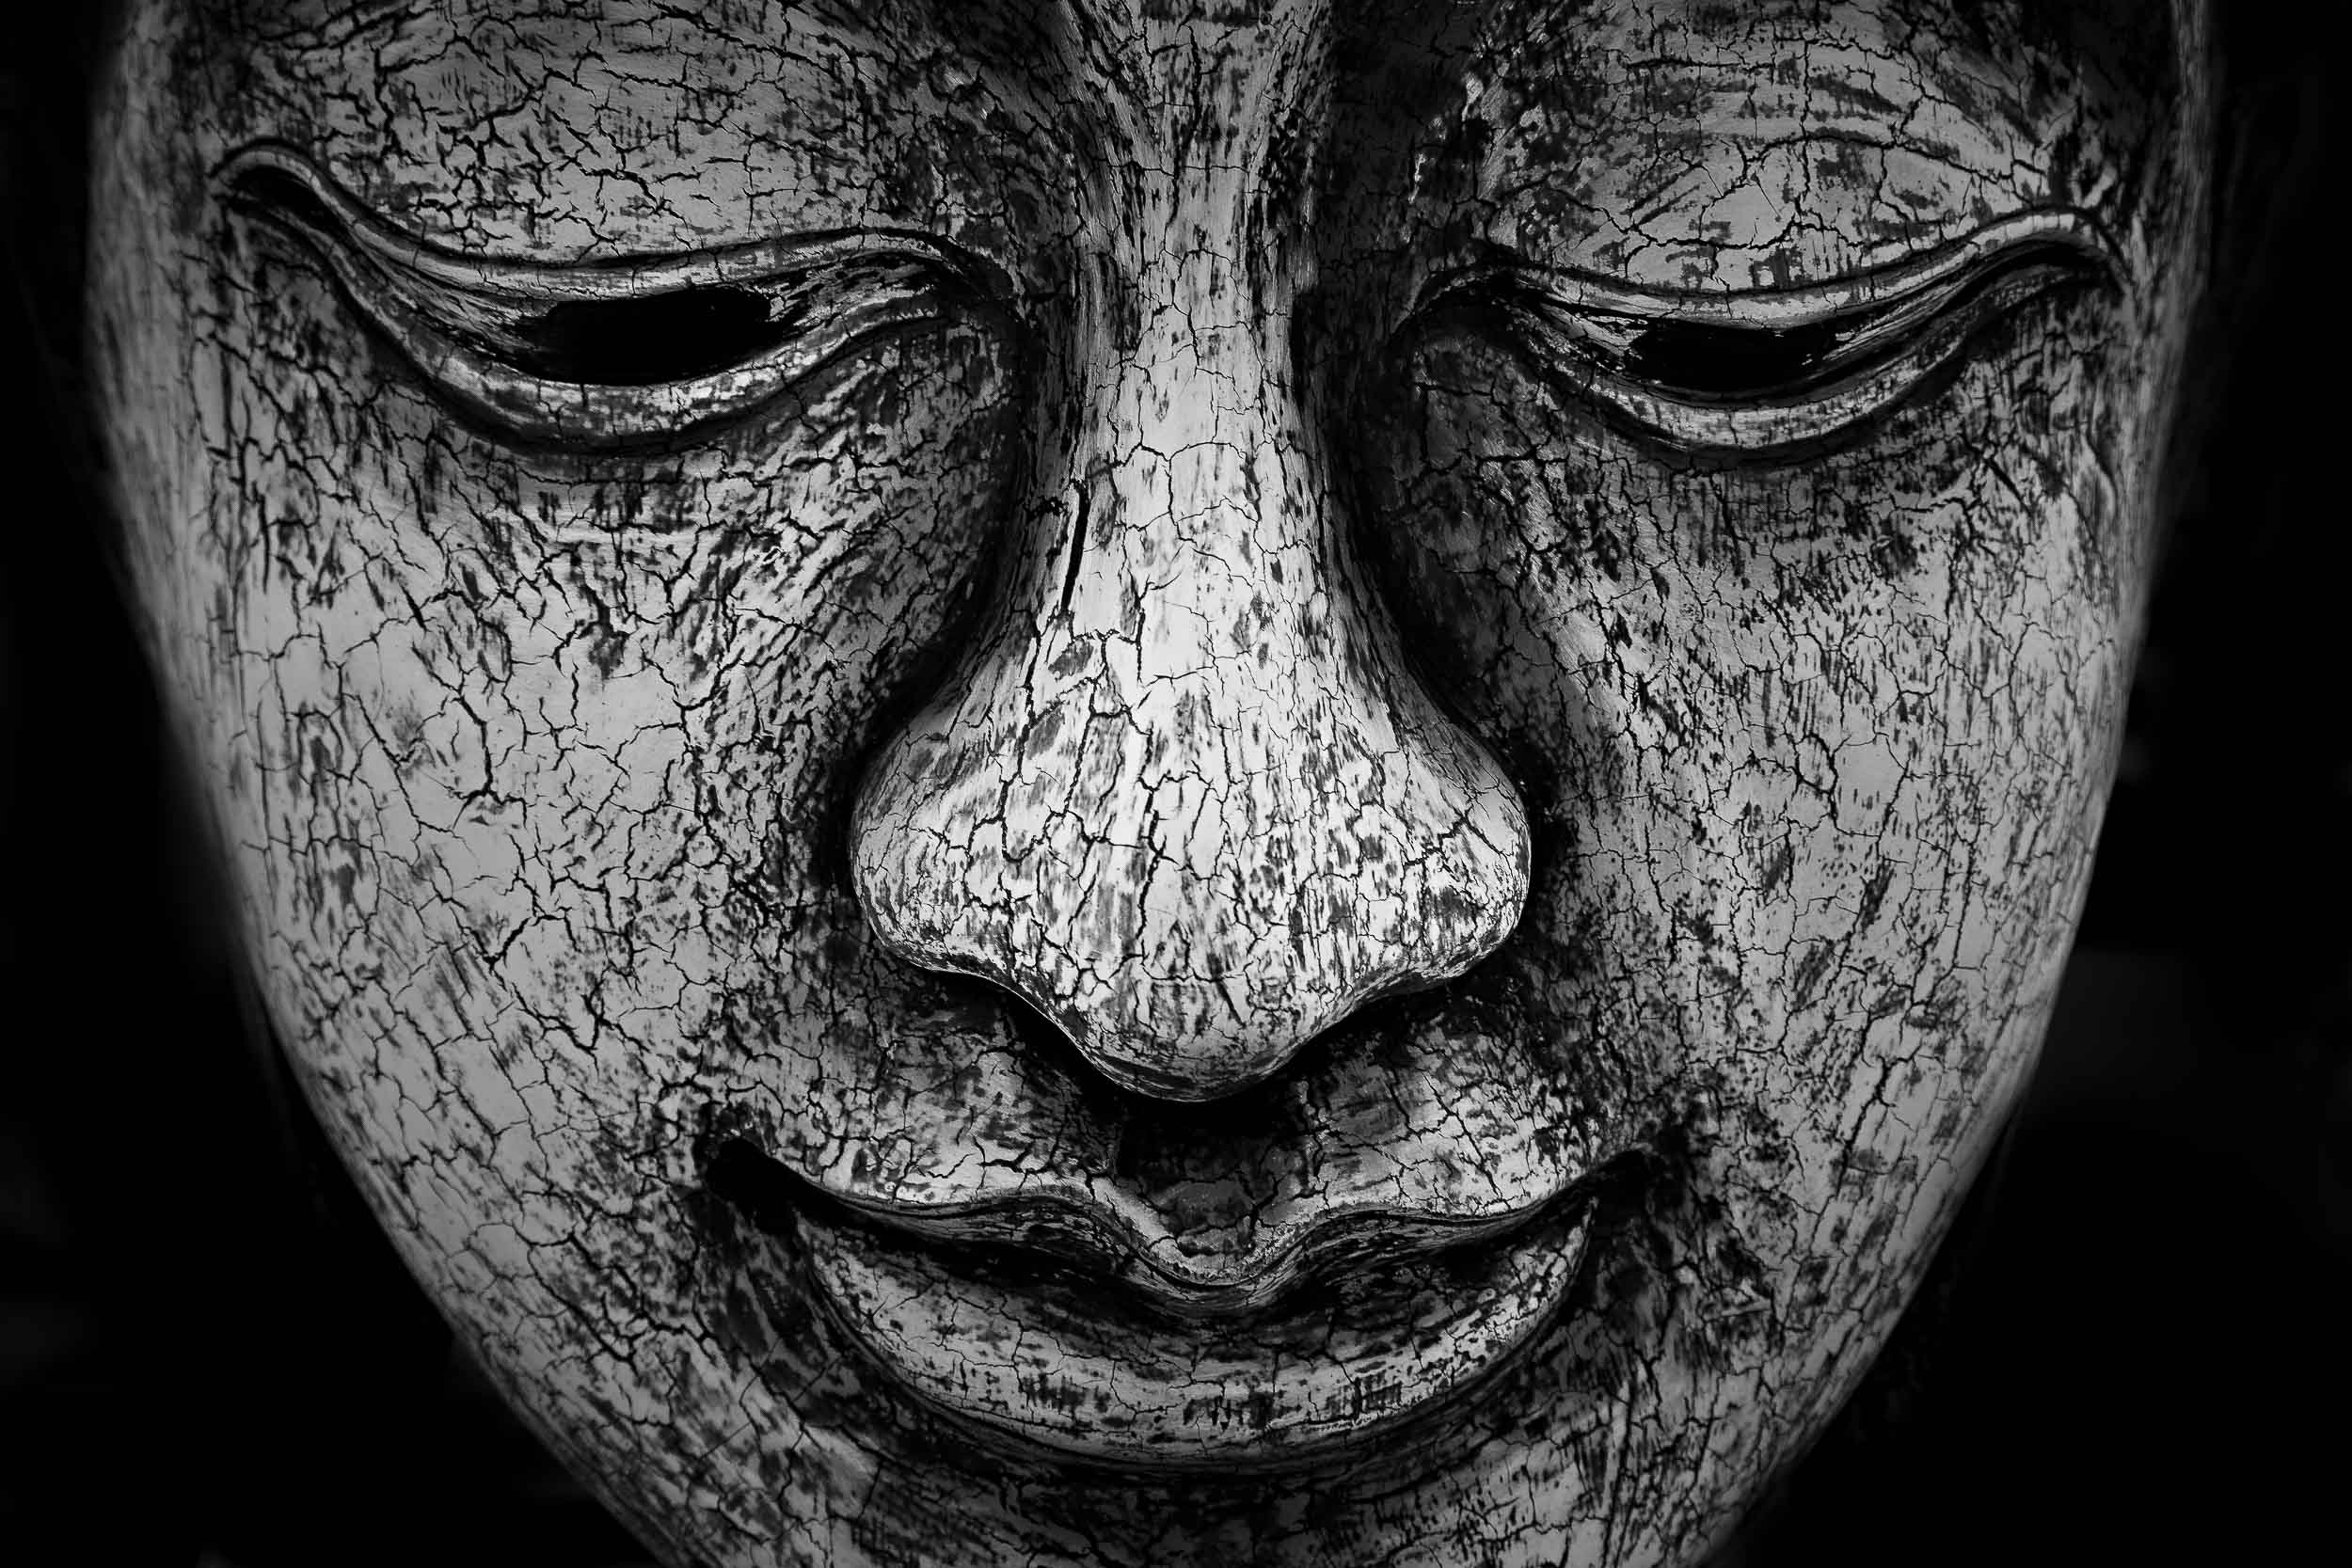 A detailed view of a contemplative study of the    Buddha's face    in this    statue    in rural    Thailand   .